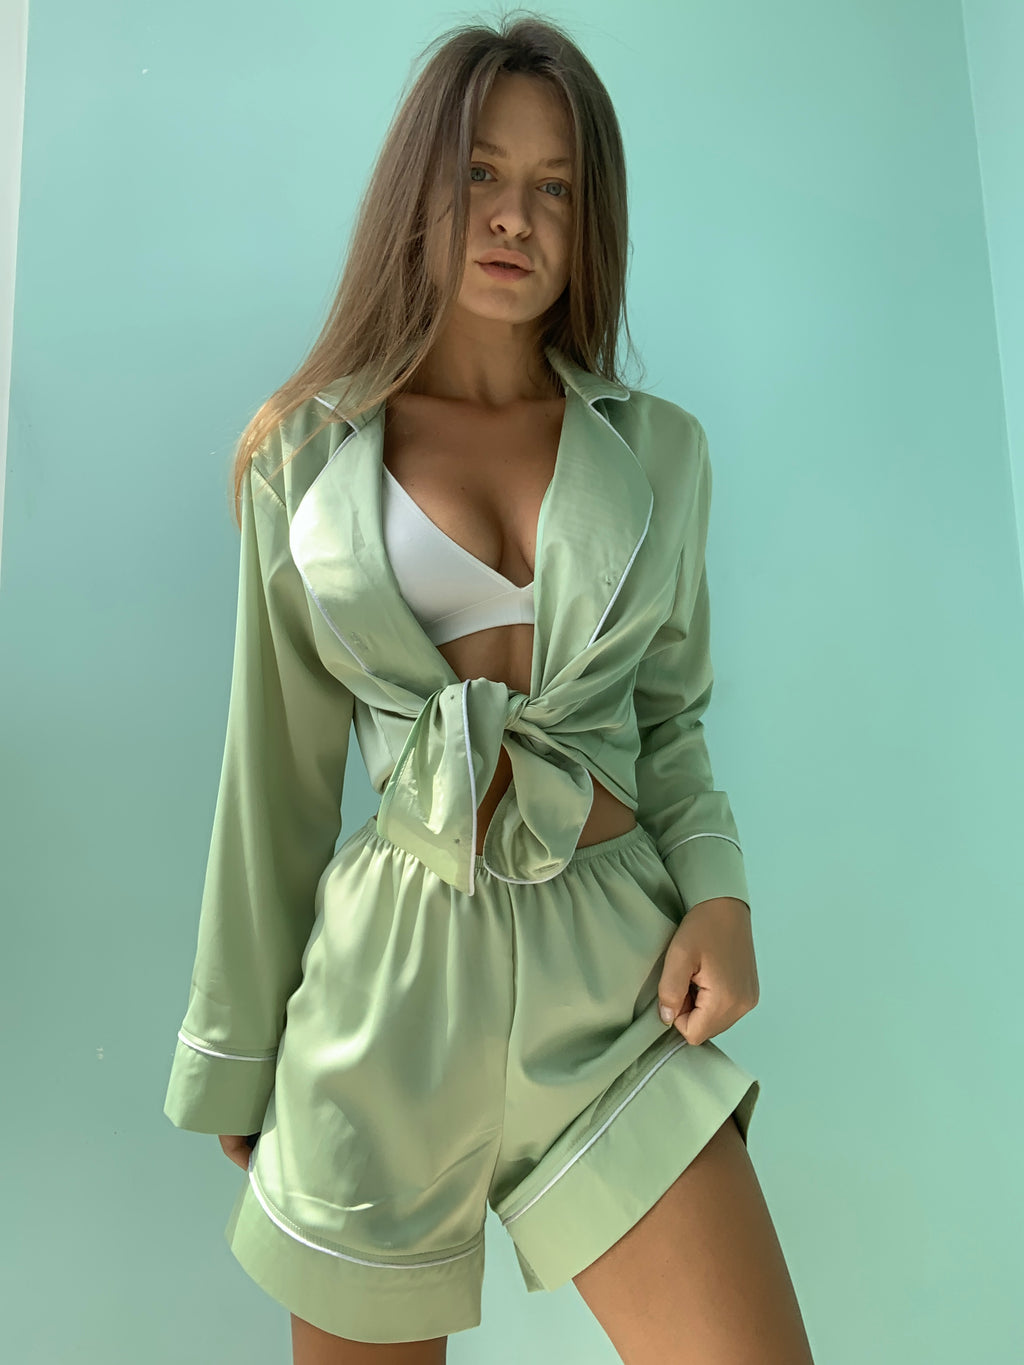 Pistachio silk pajama set (shirt plus shorts) - Okiya Studio | Sleepwear, Homewear, Lingerie, Home Textiles